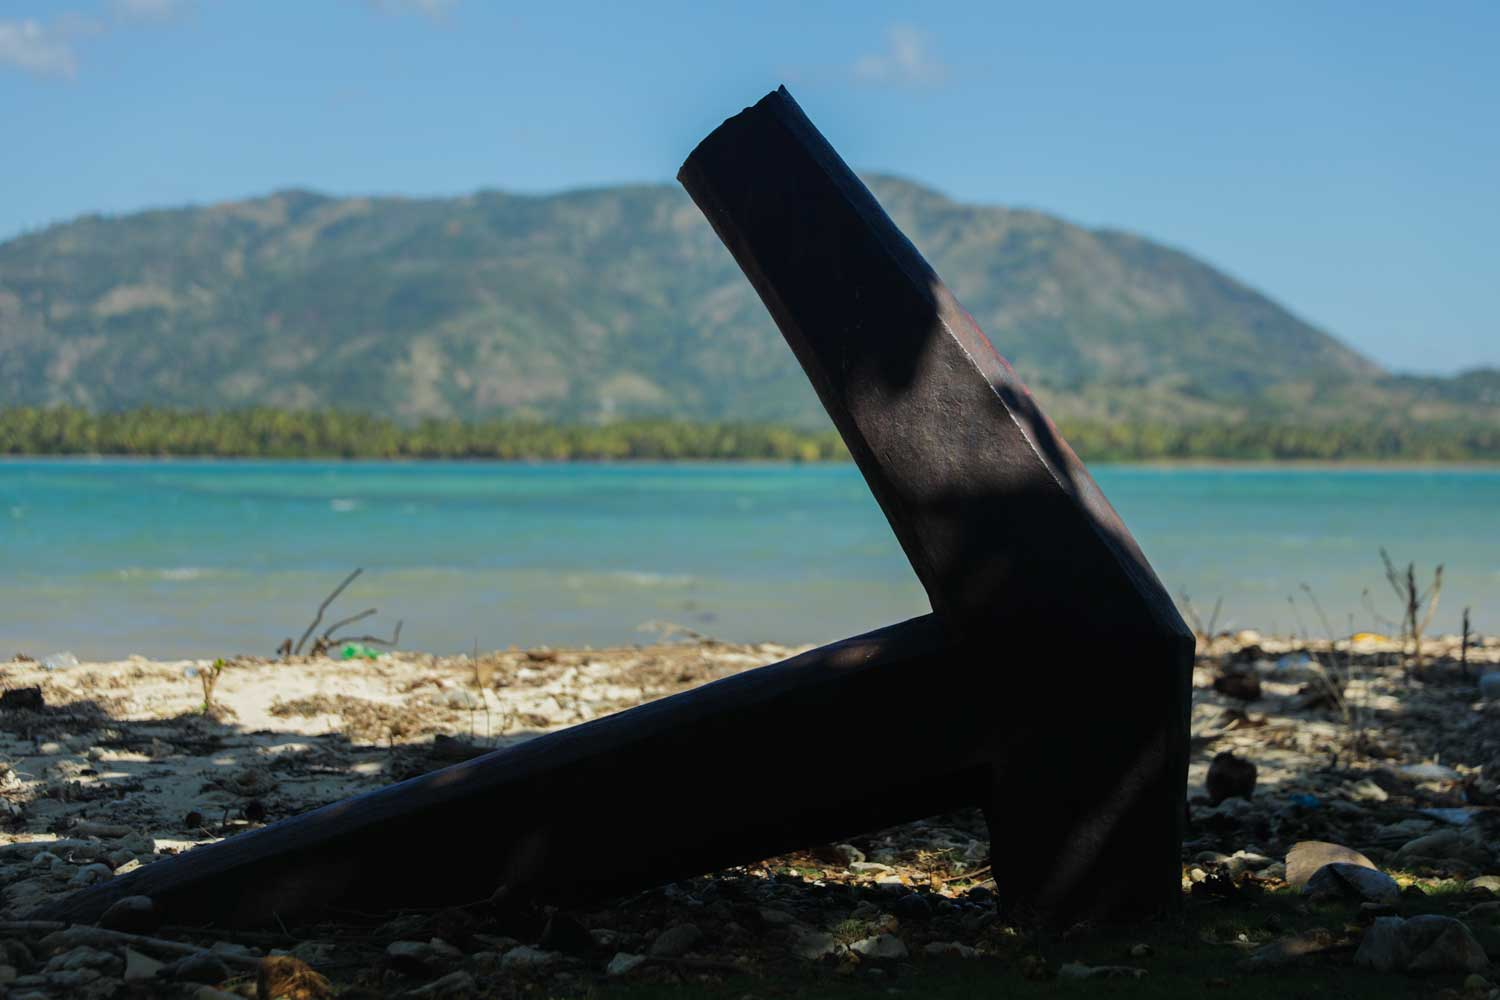 Anchor embedded in the beach at Fort des Anglais, Haiti